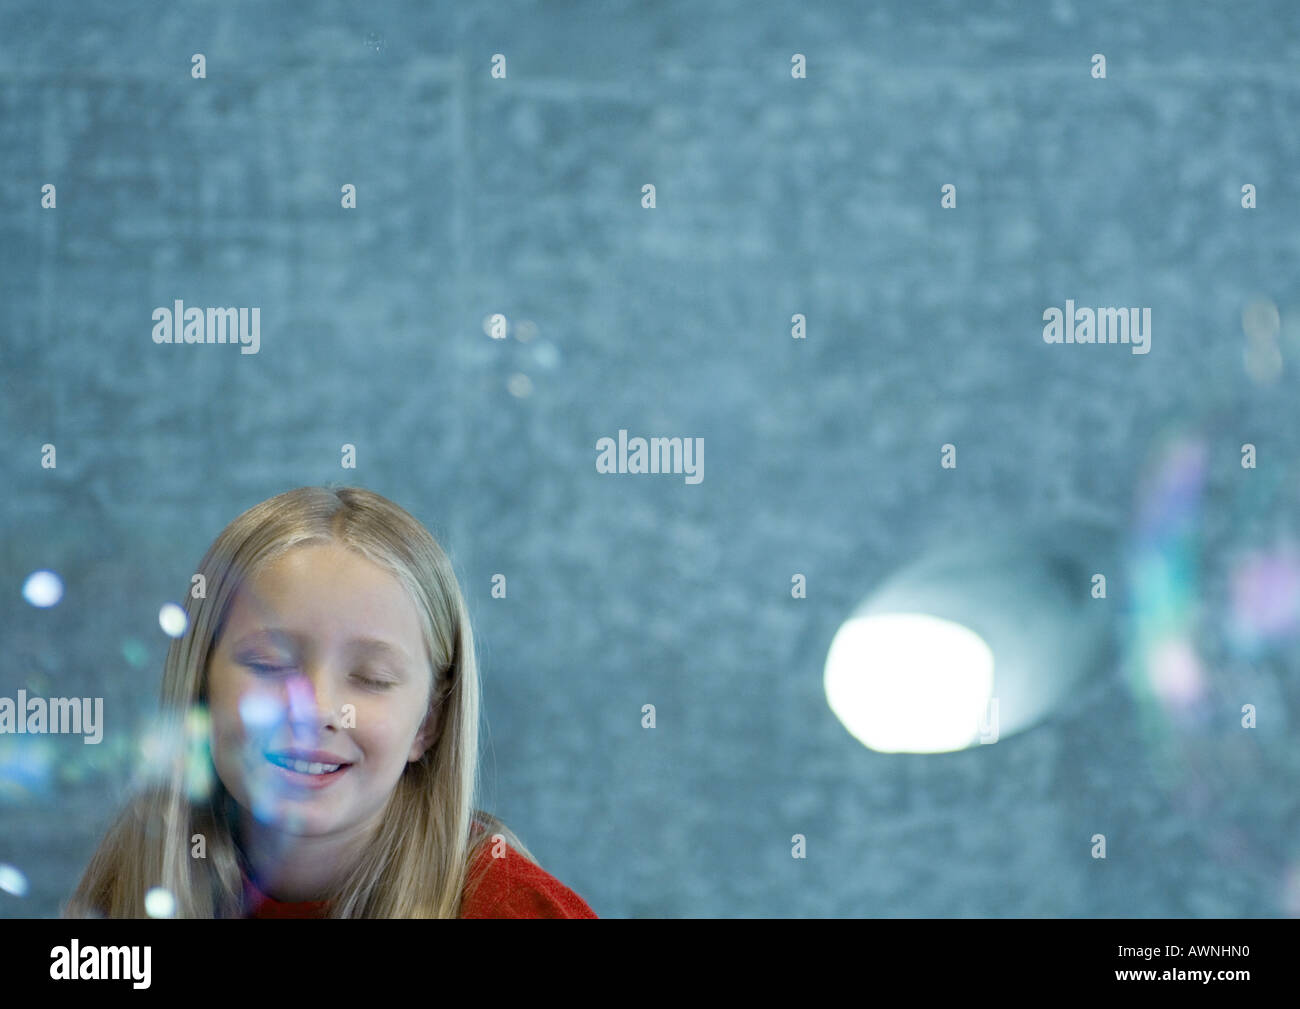 Girl closing eyes as bubbles float in the air - Stock Image